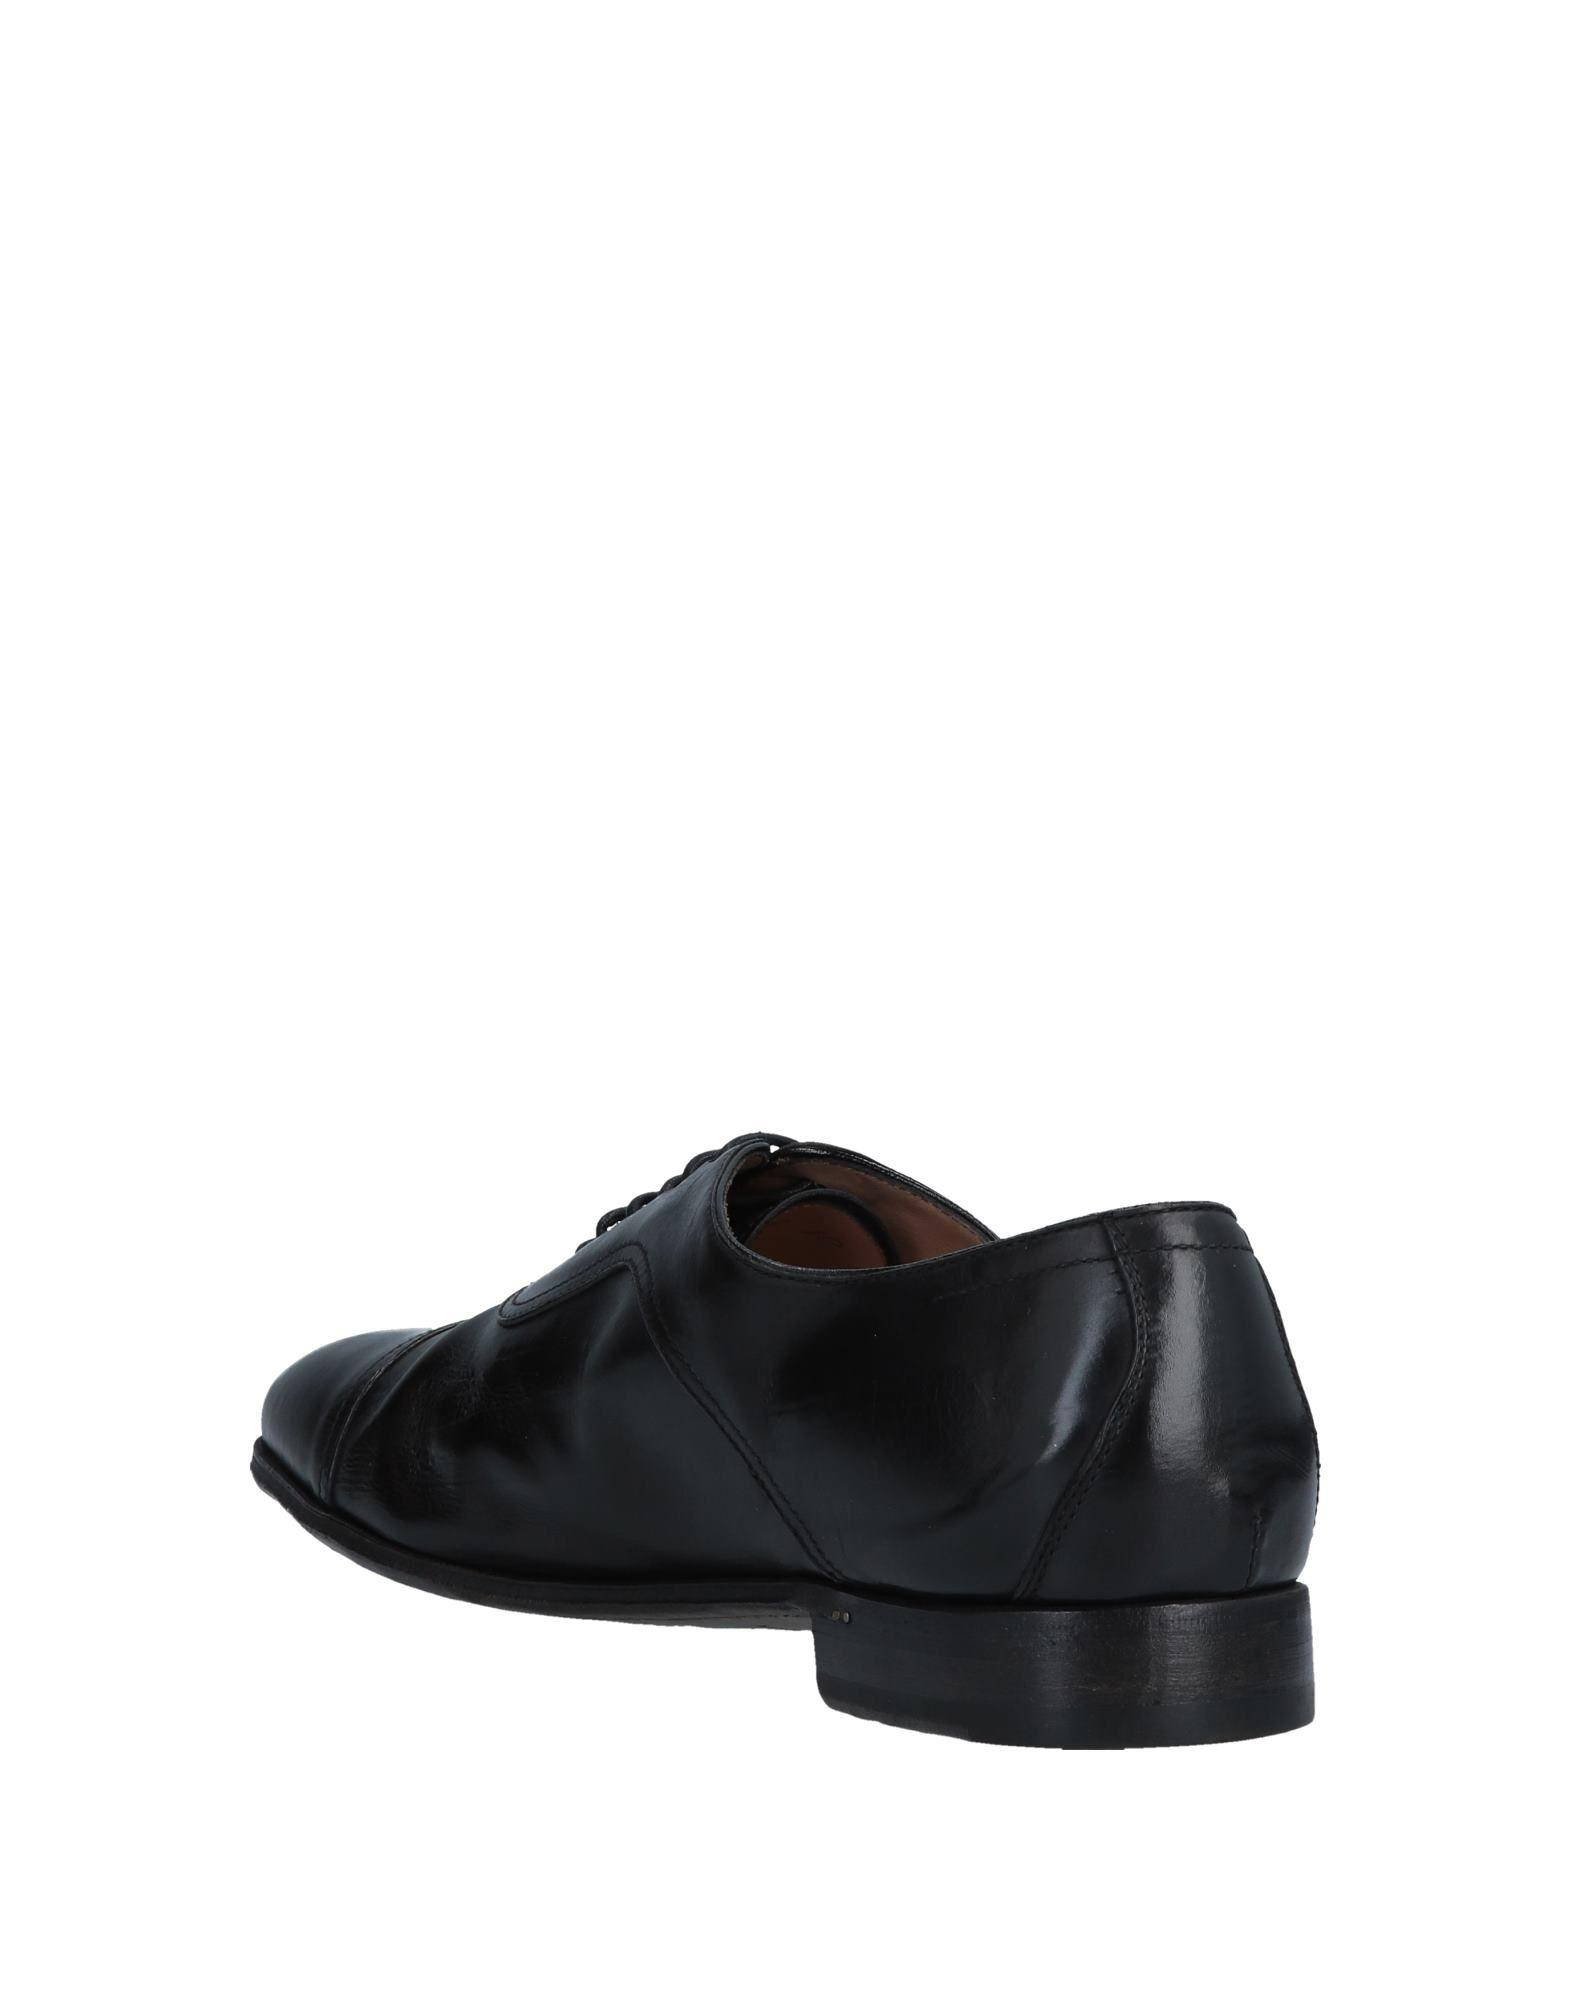 ccf24ed8b95a Lyst - Silvano Sassetti Lace-up Shoe in Black for Men